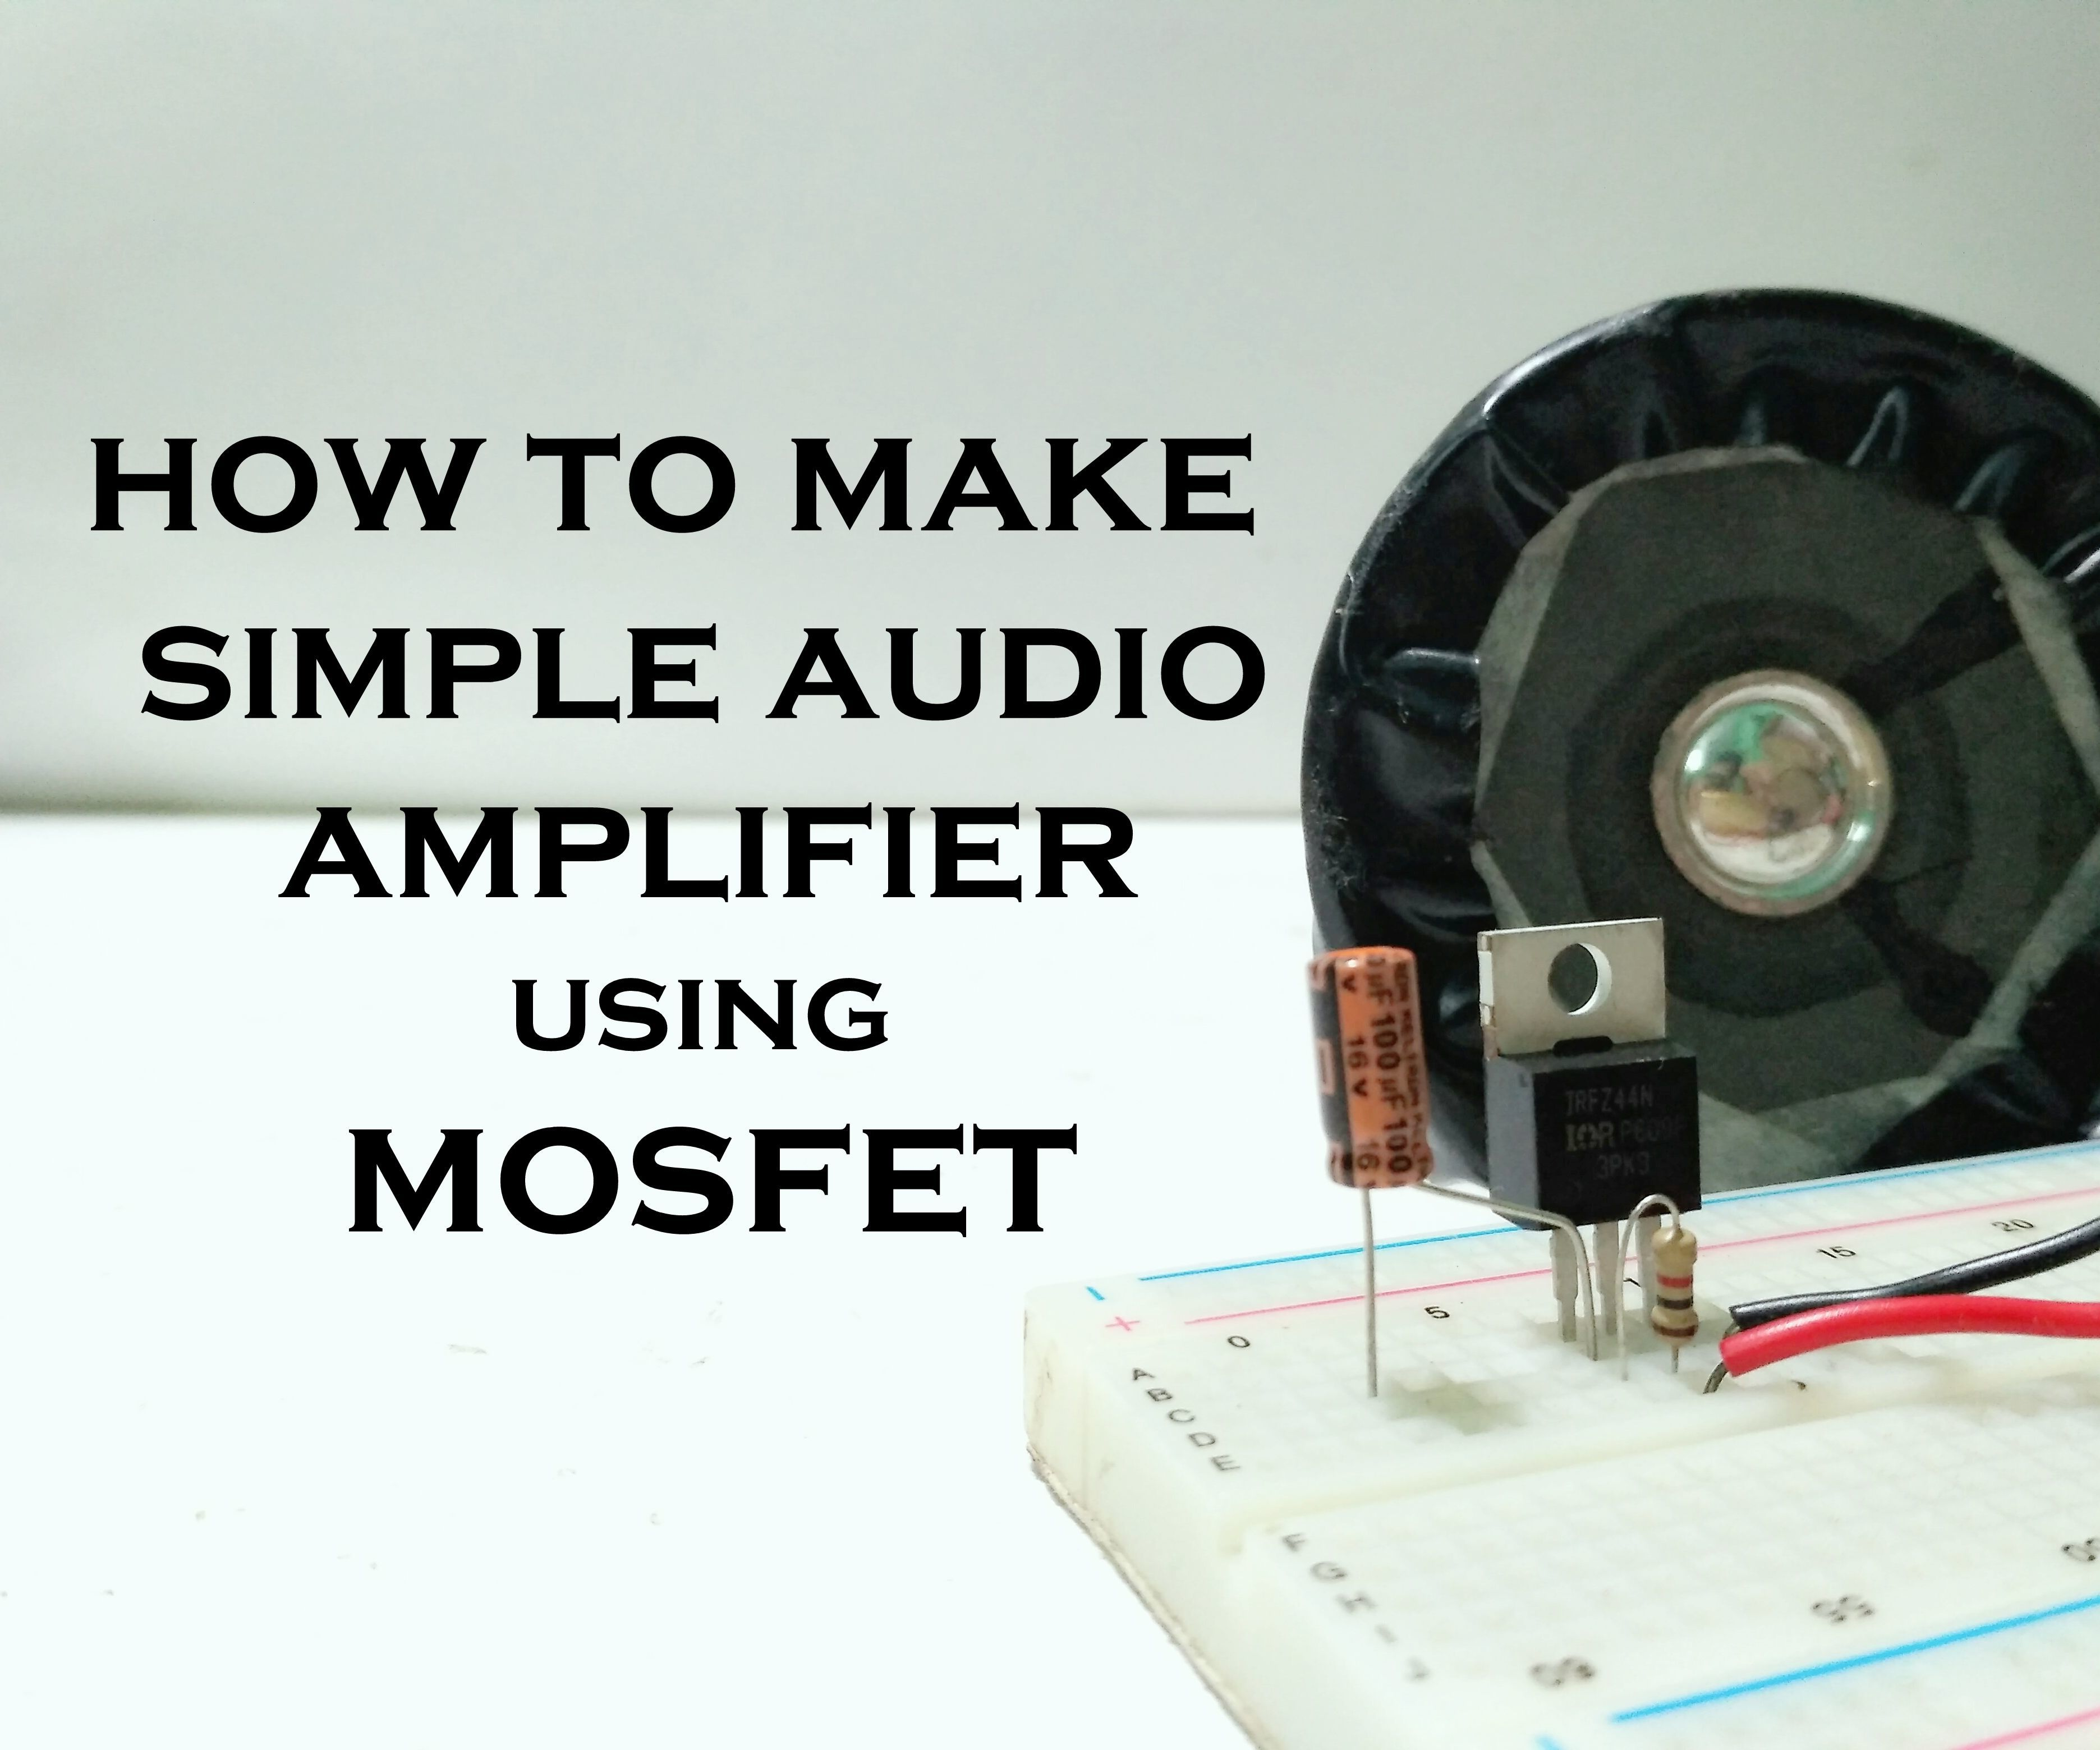 How to Make Simple Audio Amplifier With Mosfet: 4 Steps (with Pictures)